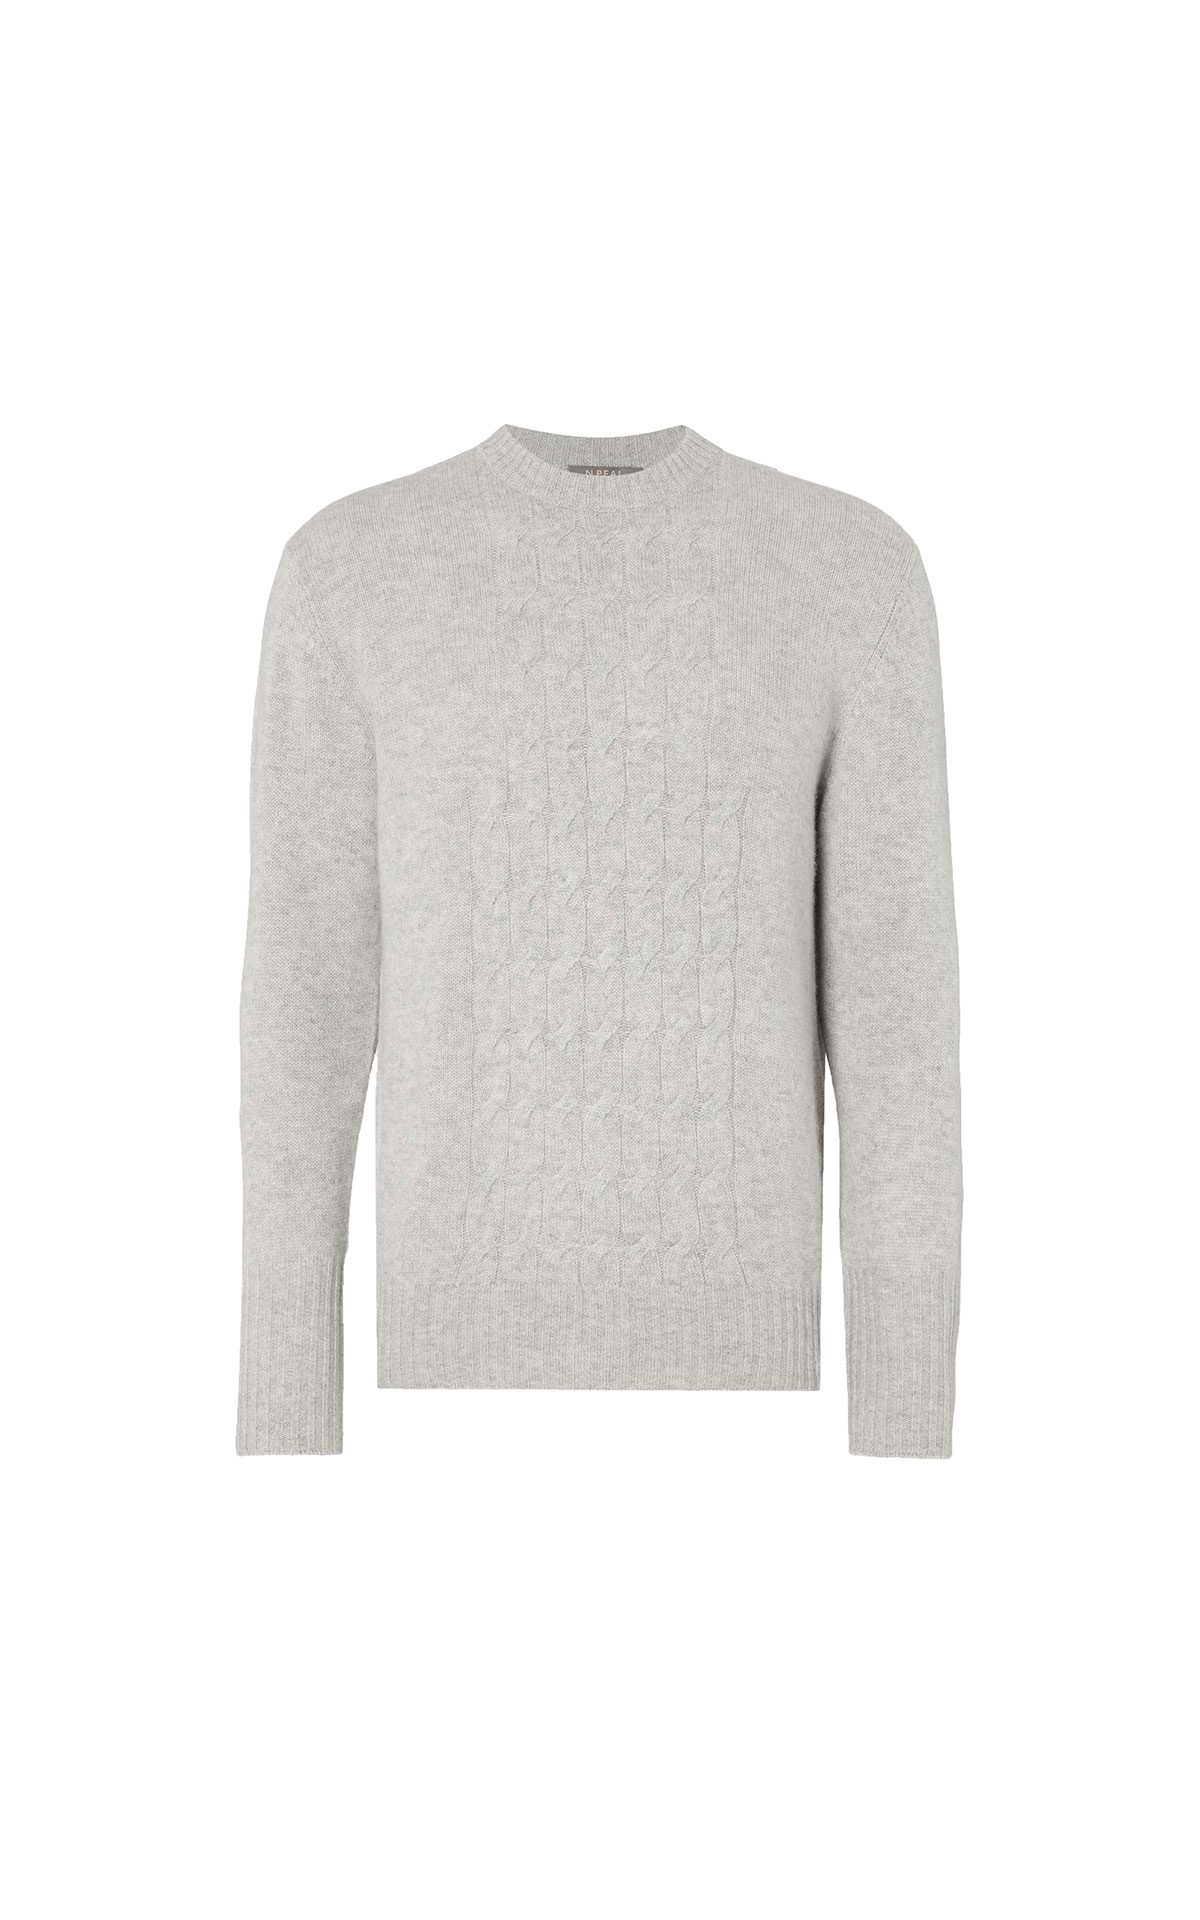 N.Peal Men's placement cable sweater  from Bicester Village